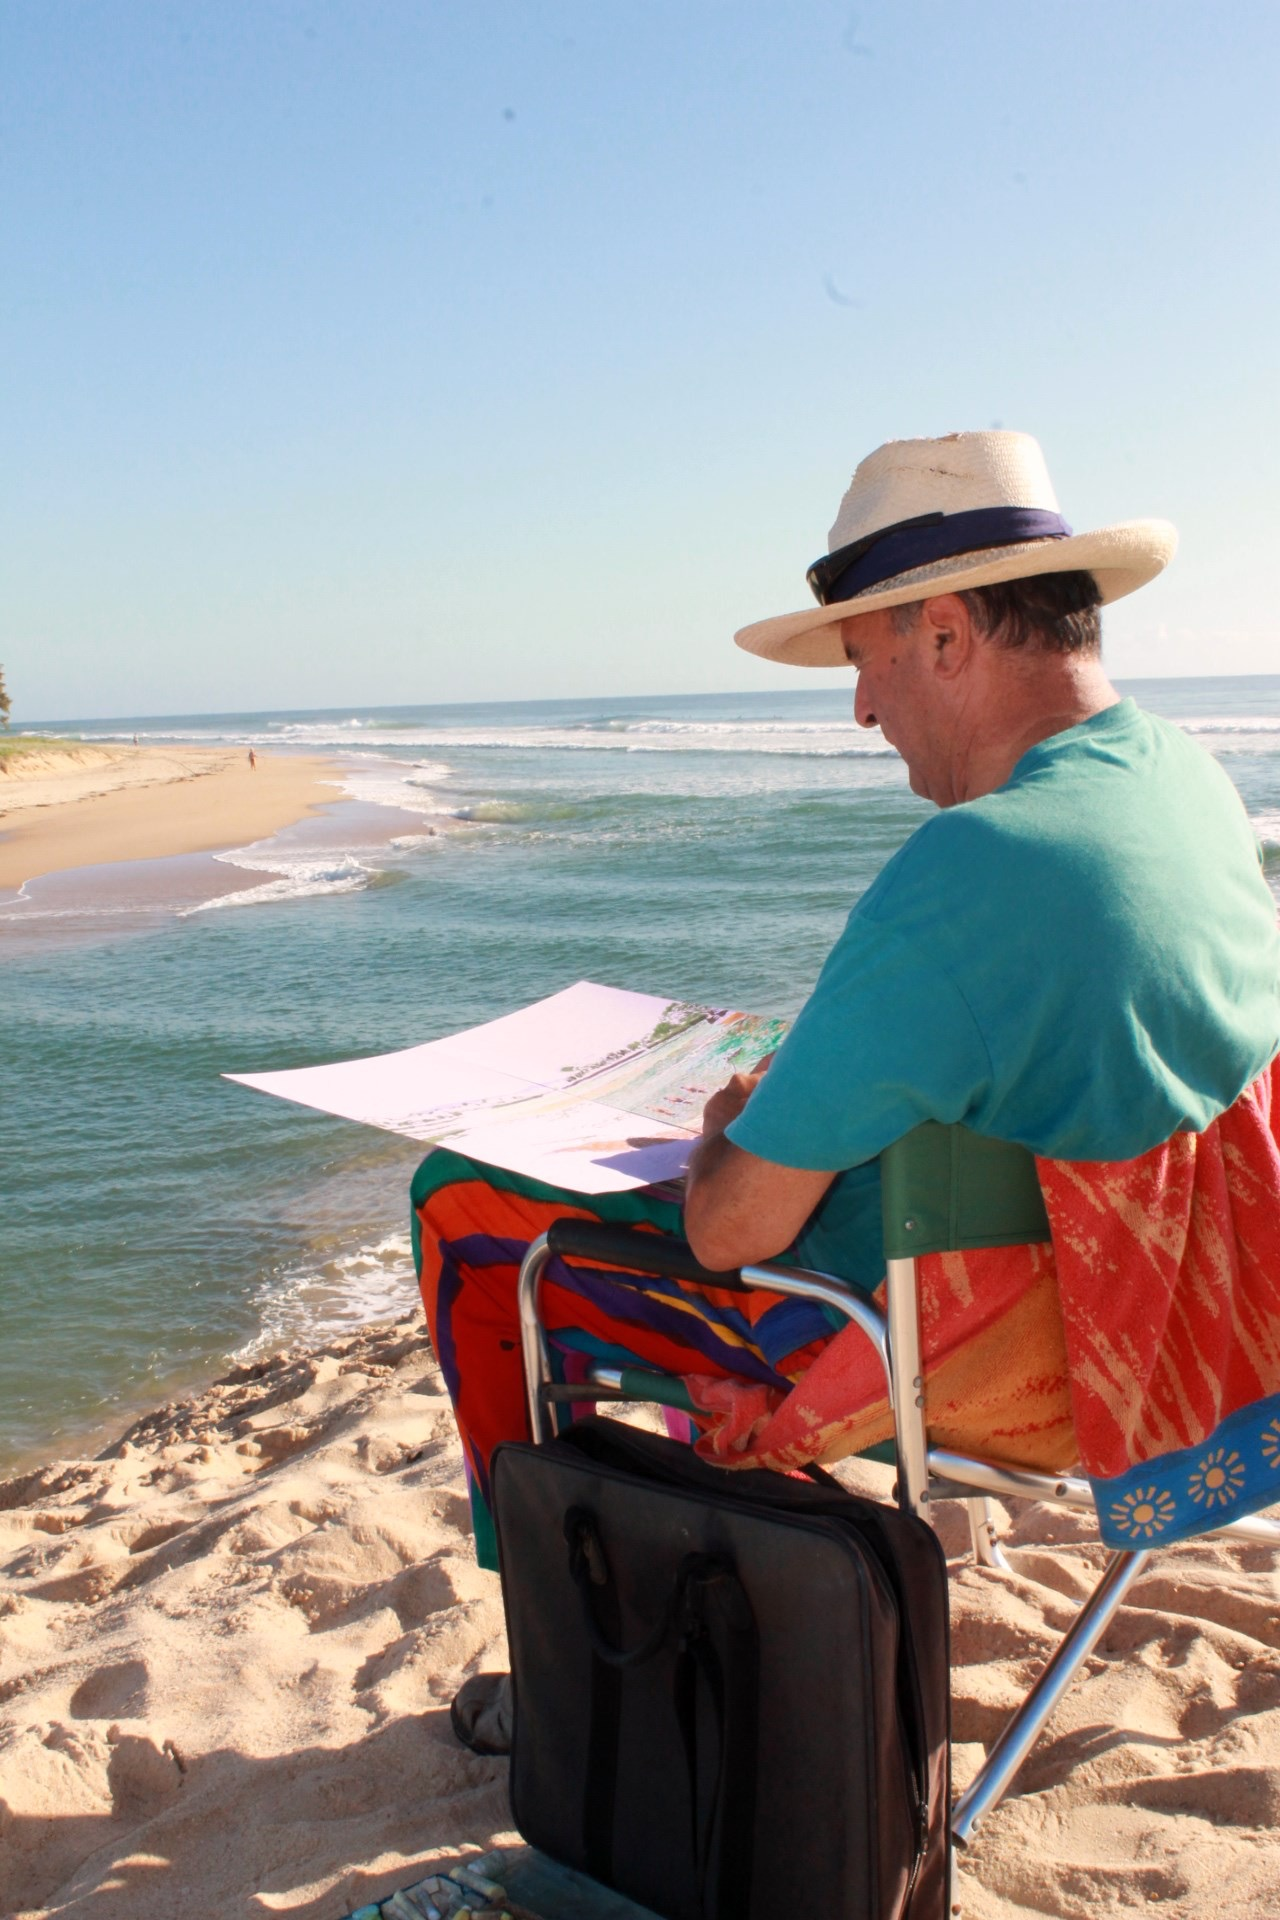 Drawing on the dune at Currimundi